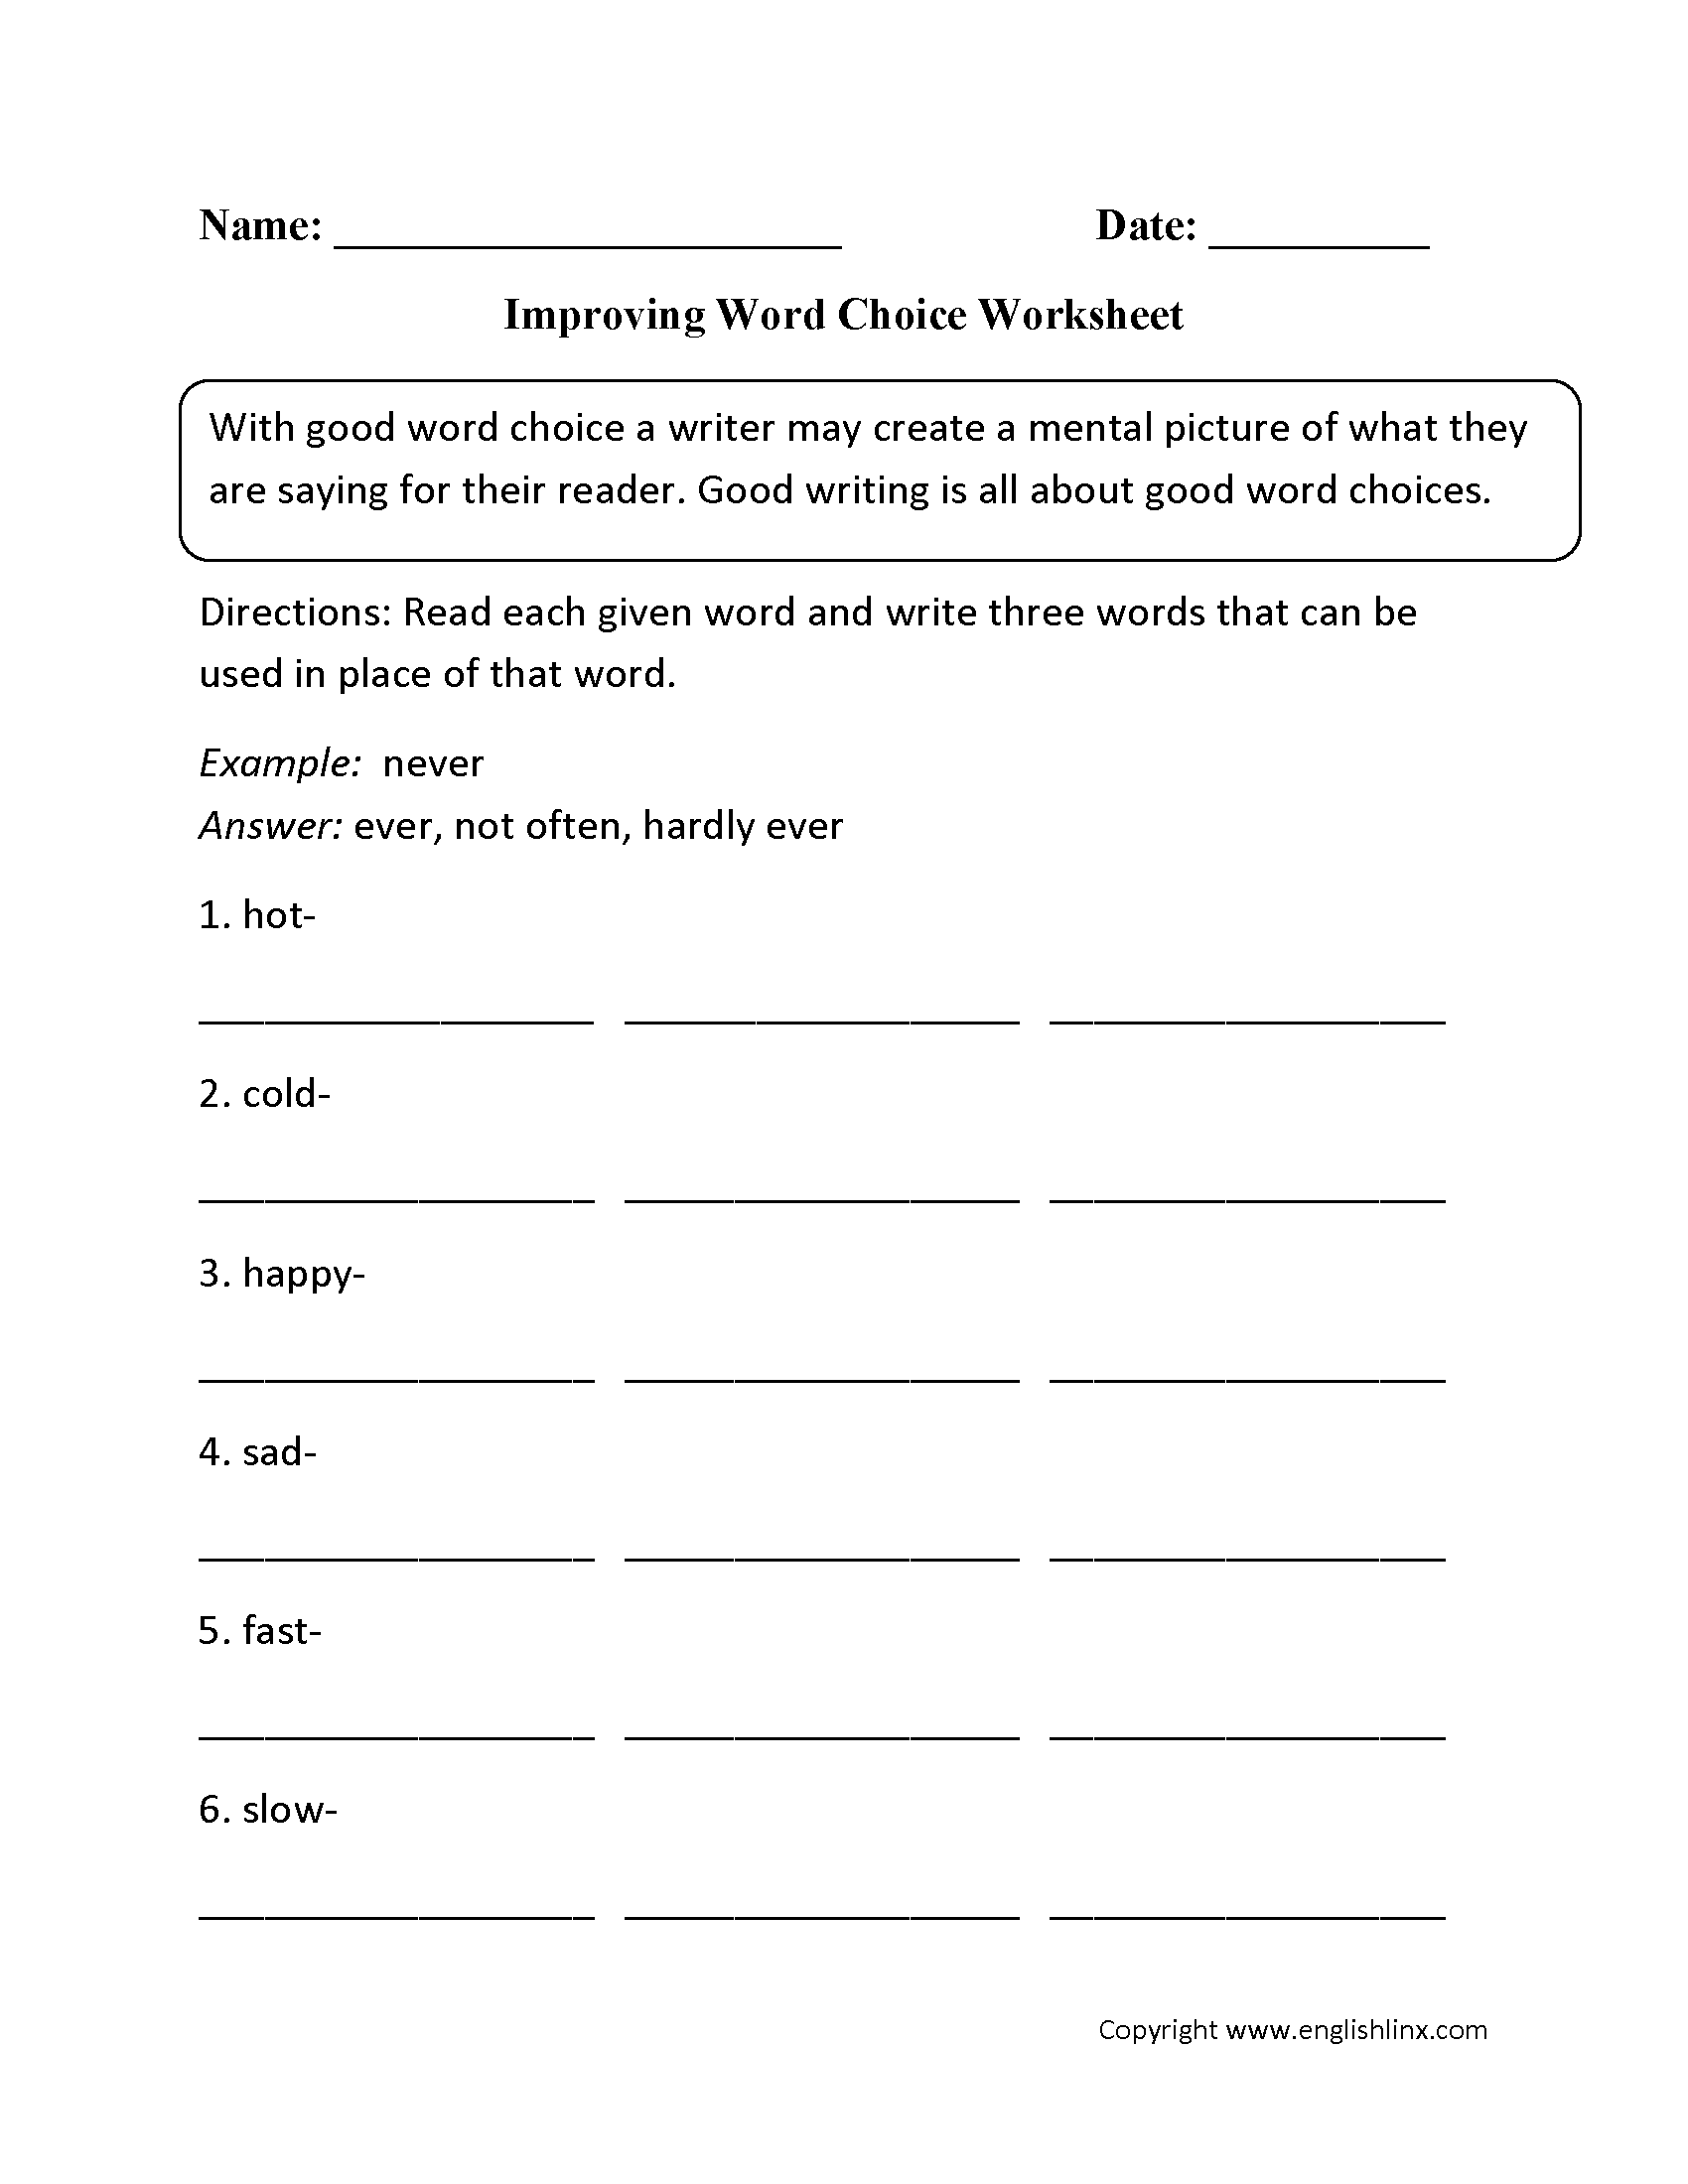 Worksheet Drawing Conclusions Worksheets 3rd Grade